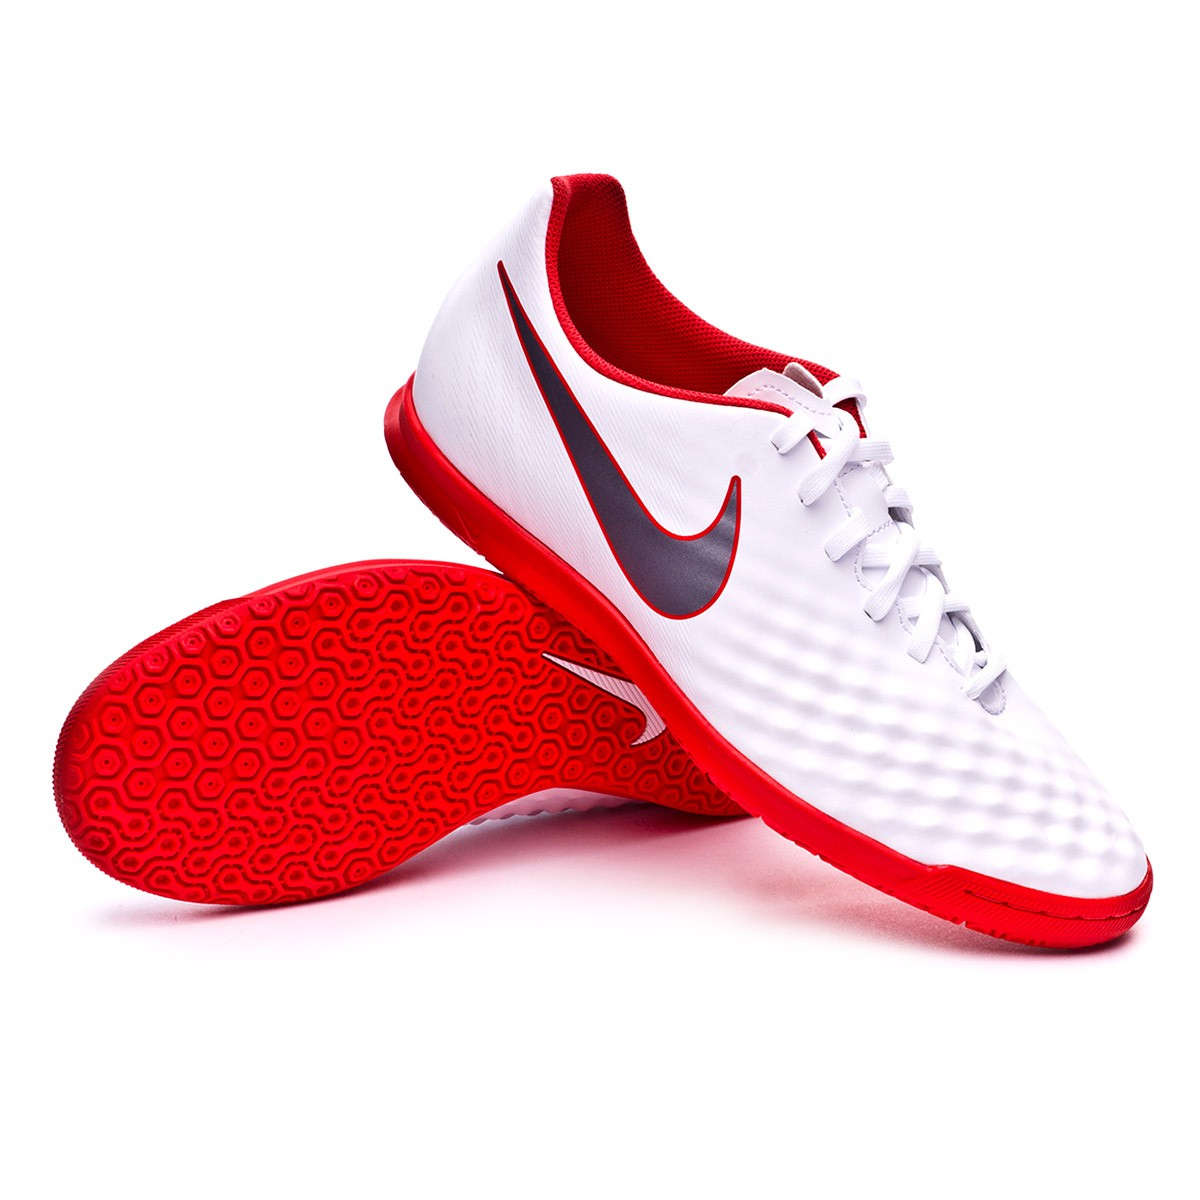 e7c64b2a8ca57 Futsal Boot Nike Magista ObraX II Club IC White-Metallic cool grey ...